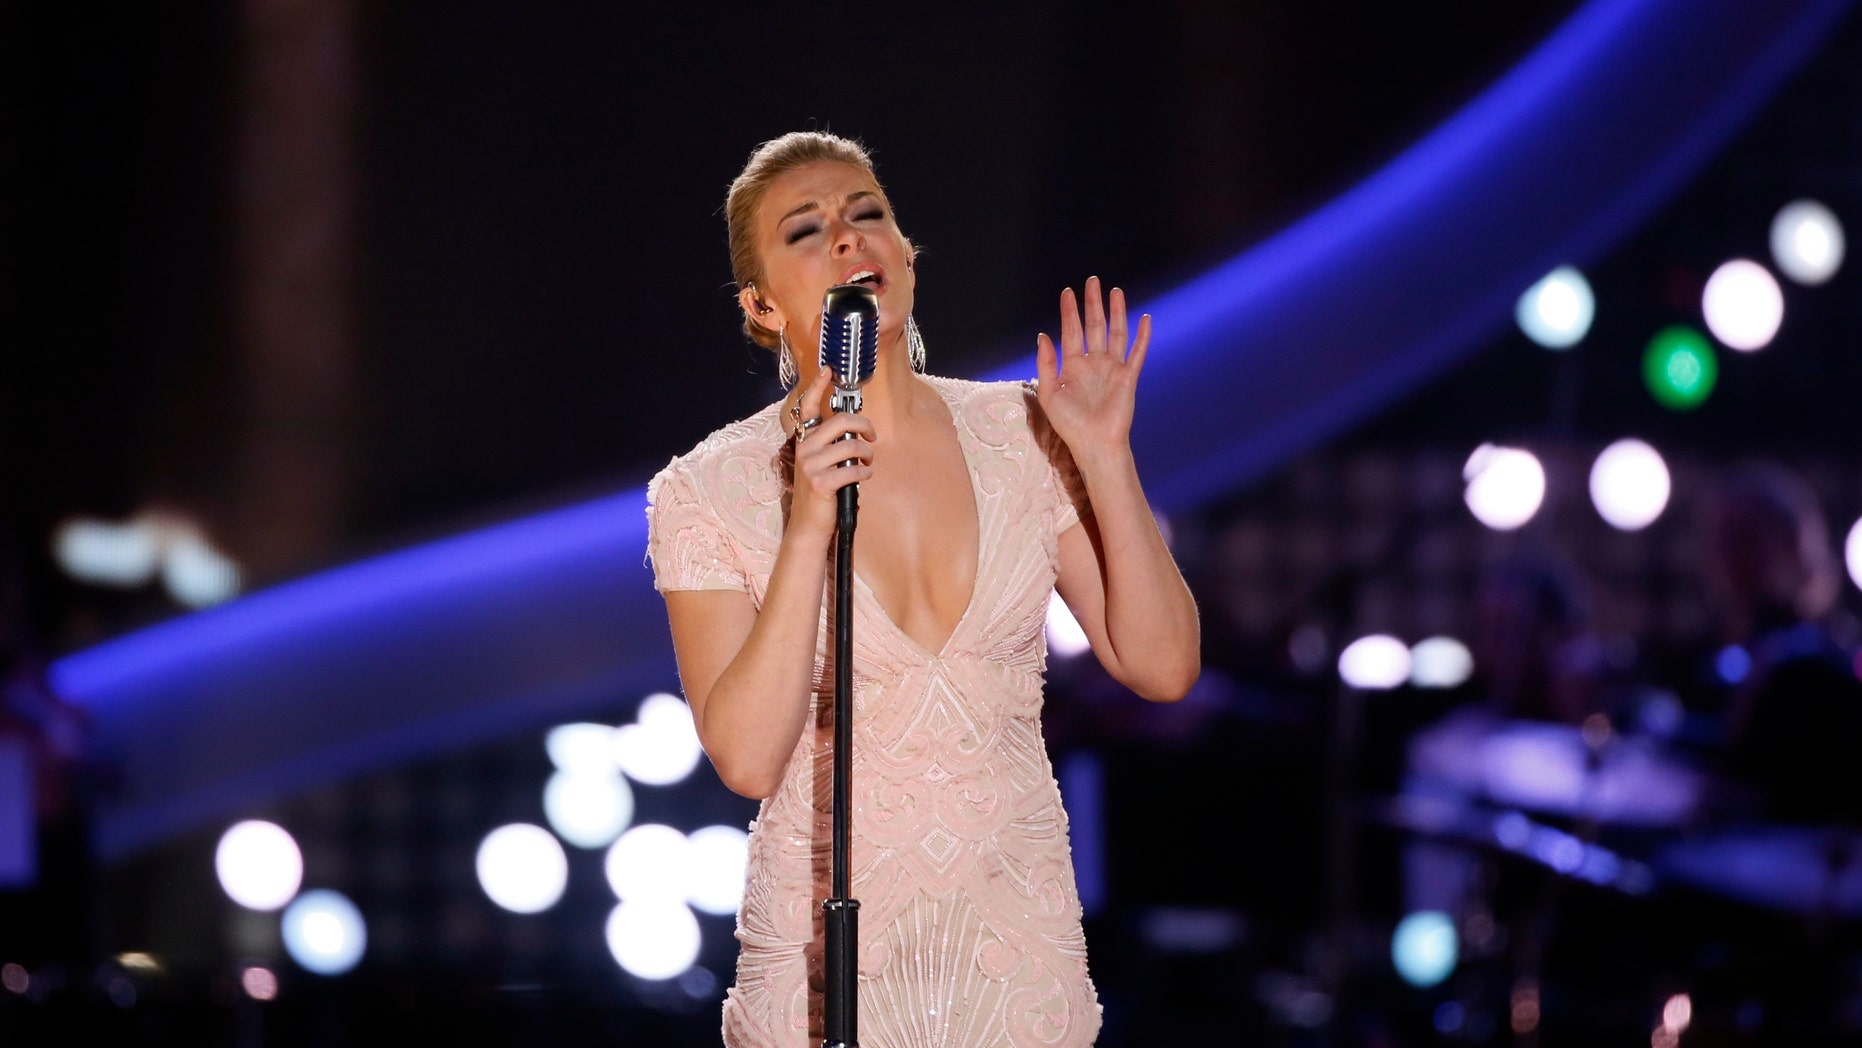 Singer Leann Rimes performs a medley of Patsy Cline songs during the 4th annual American Country Awards in Las Vegas, Nevada December 10, 2013.